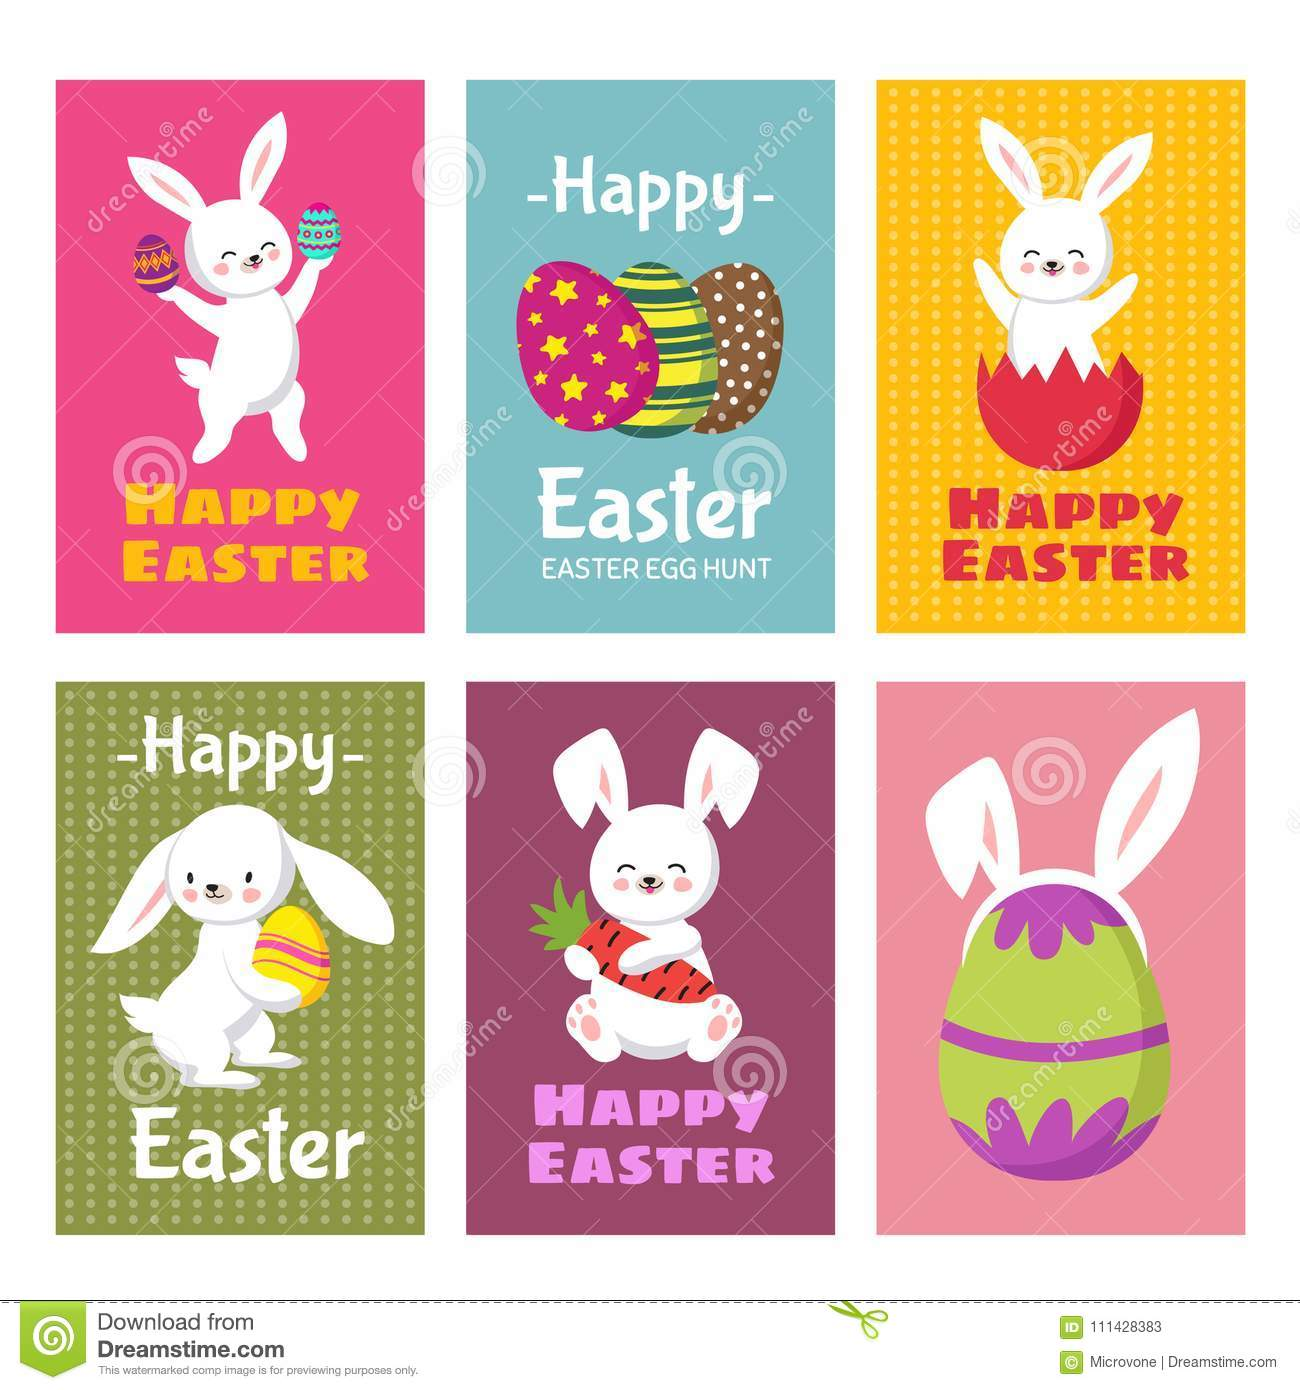 Happy Easter Vector Greeting Cards With Cartoon Bunny Rabbit And